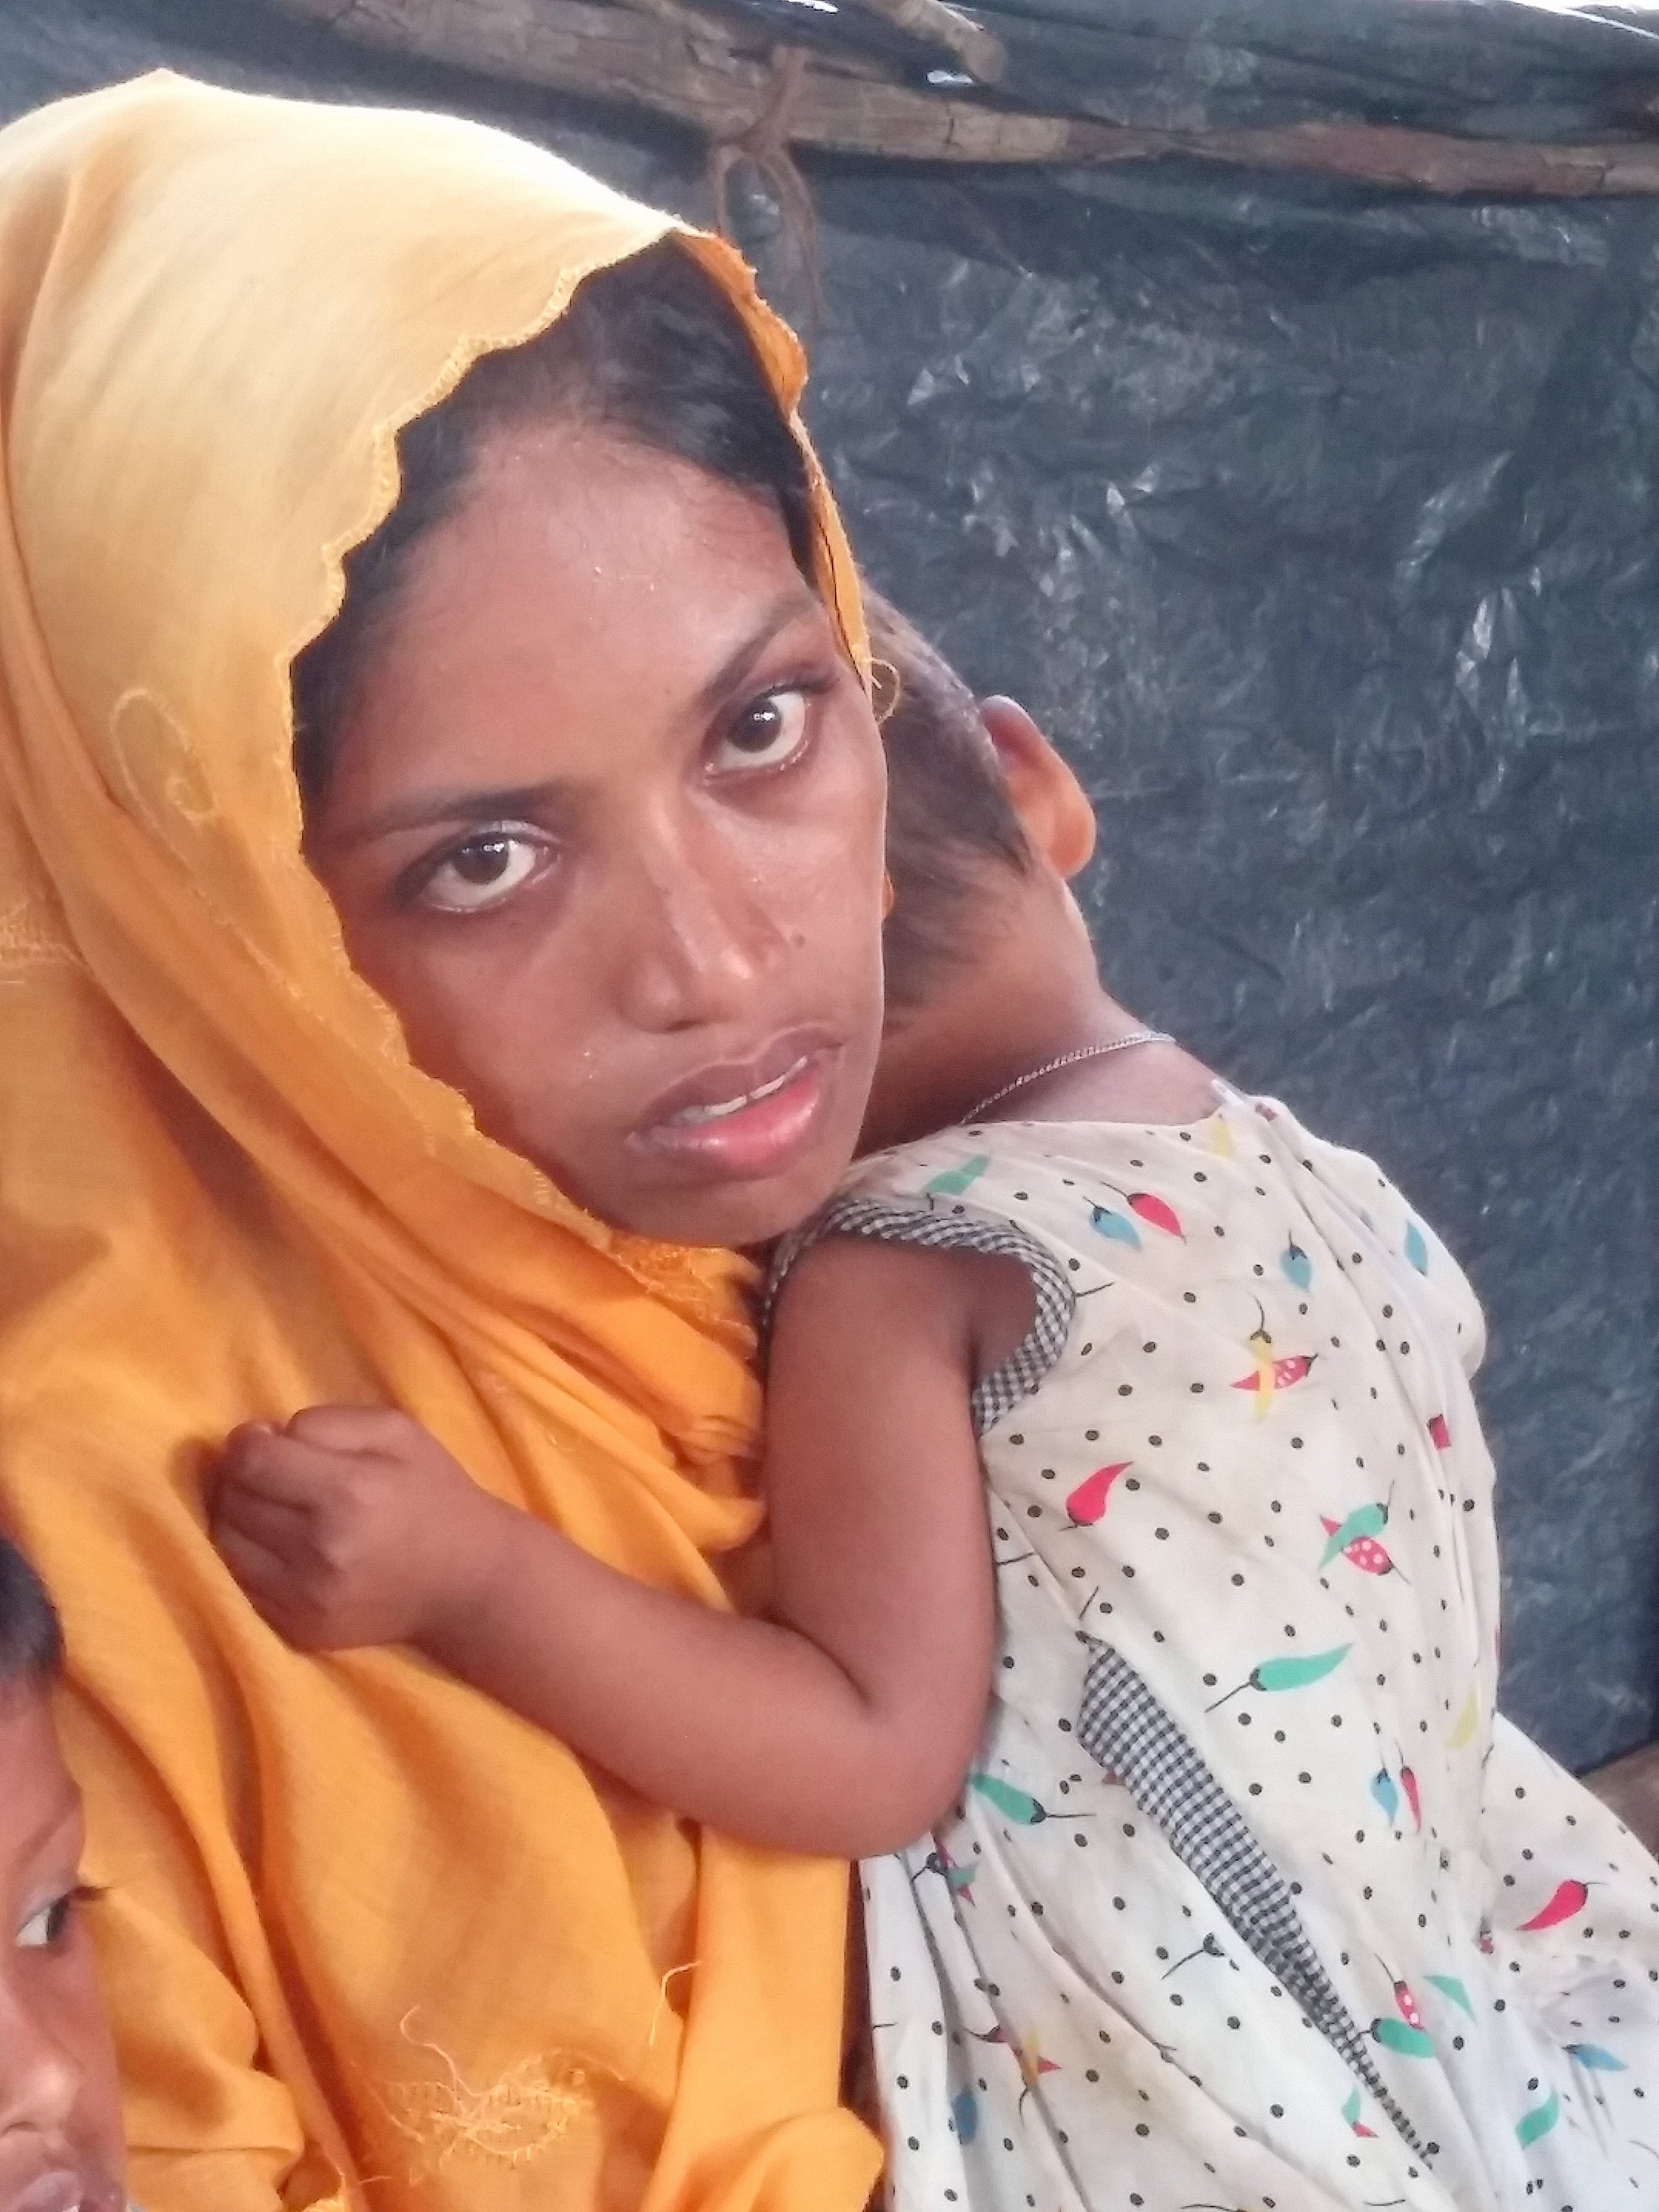 This mother told RI that the Myanmar army attacked her village and shot her husband. She escaped with her three daughters by hiding in water and walking for days to reach Bangladesh.